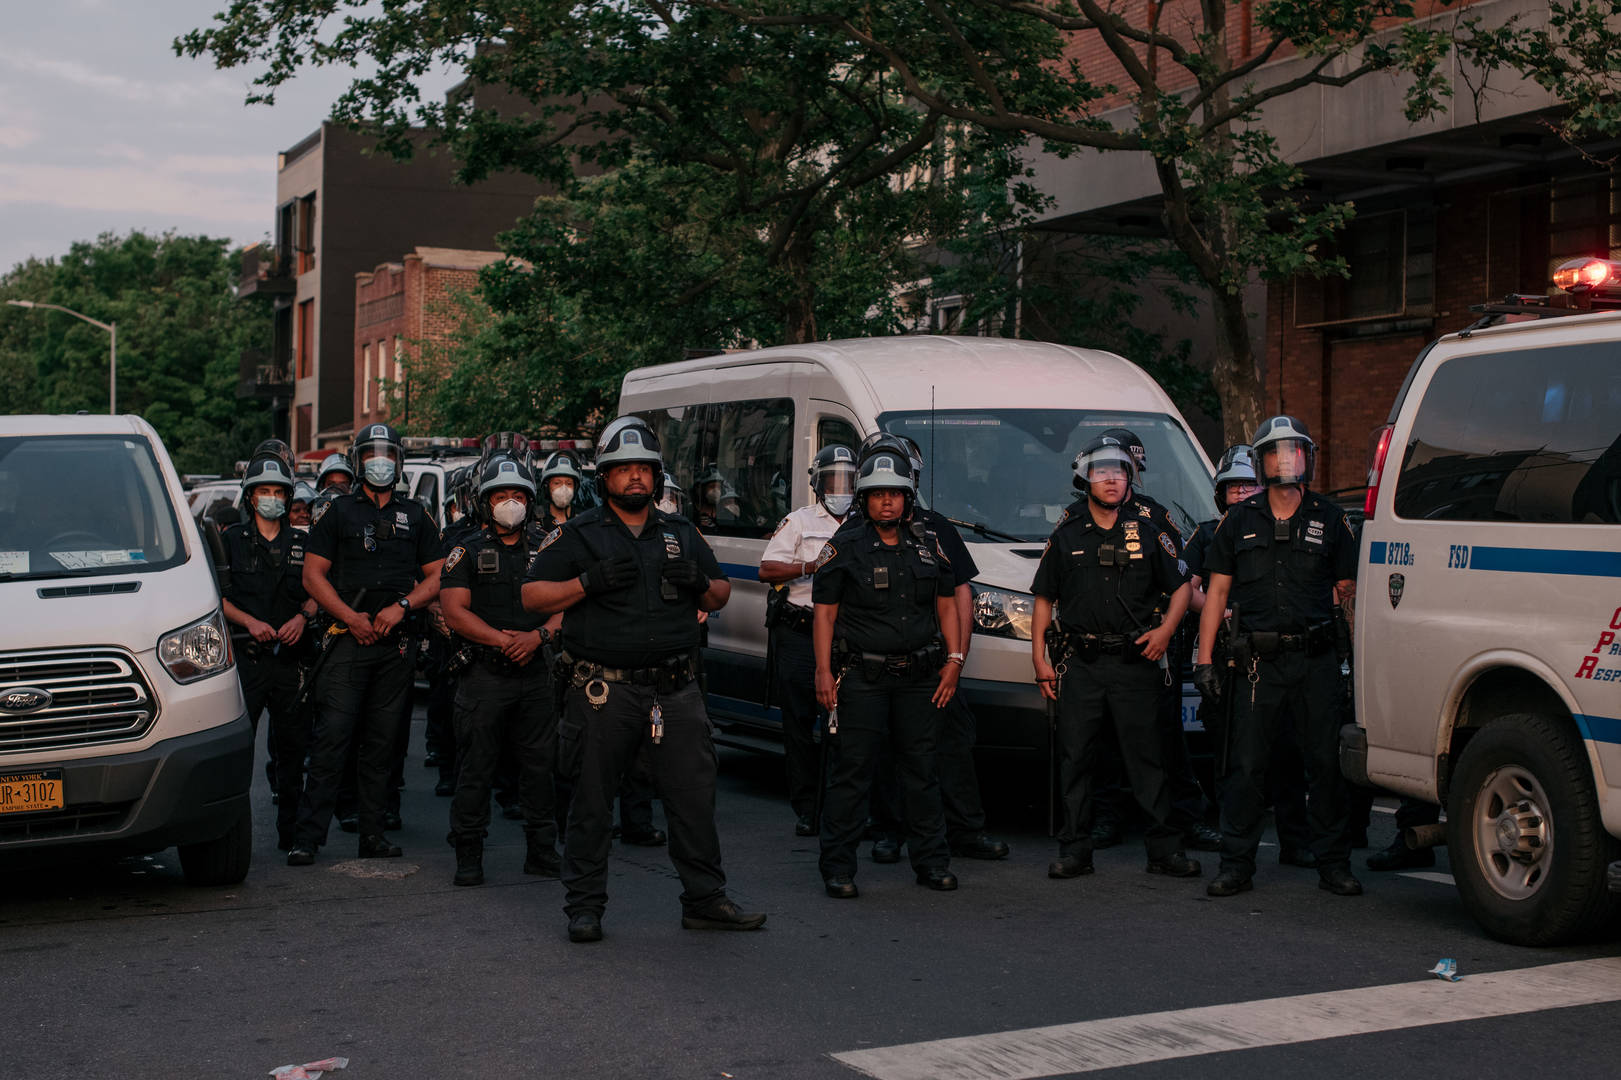 NY police officer suspended over apparent chokehold incident